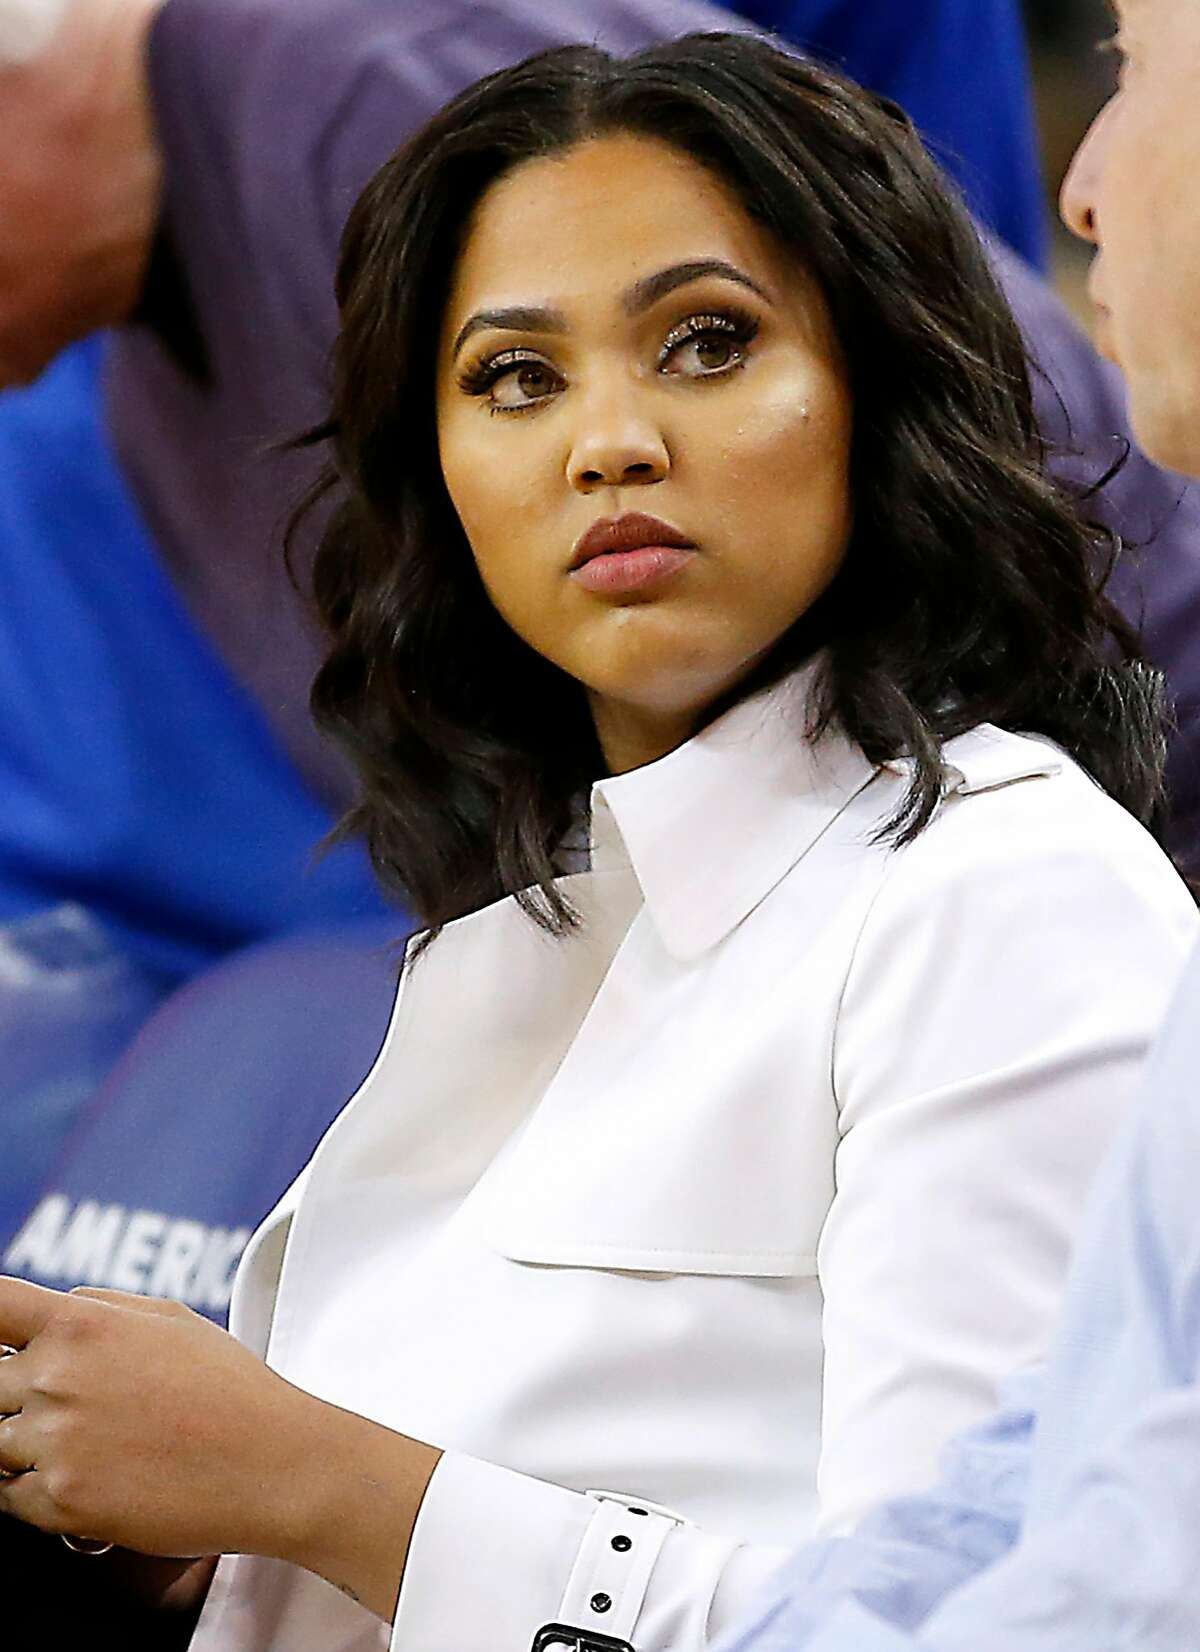 Ayesha Curry went off on the NBA in a postgame tweet Thursday, saying it rigged Game 6 of the Finals after the Warriors lost. Click through the gallery to relive the other times athletes' wives generated headlines.